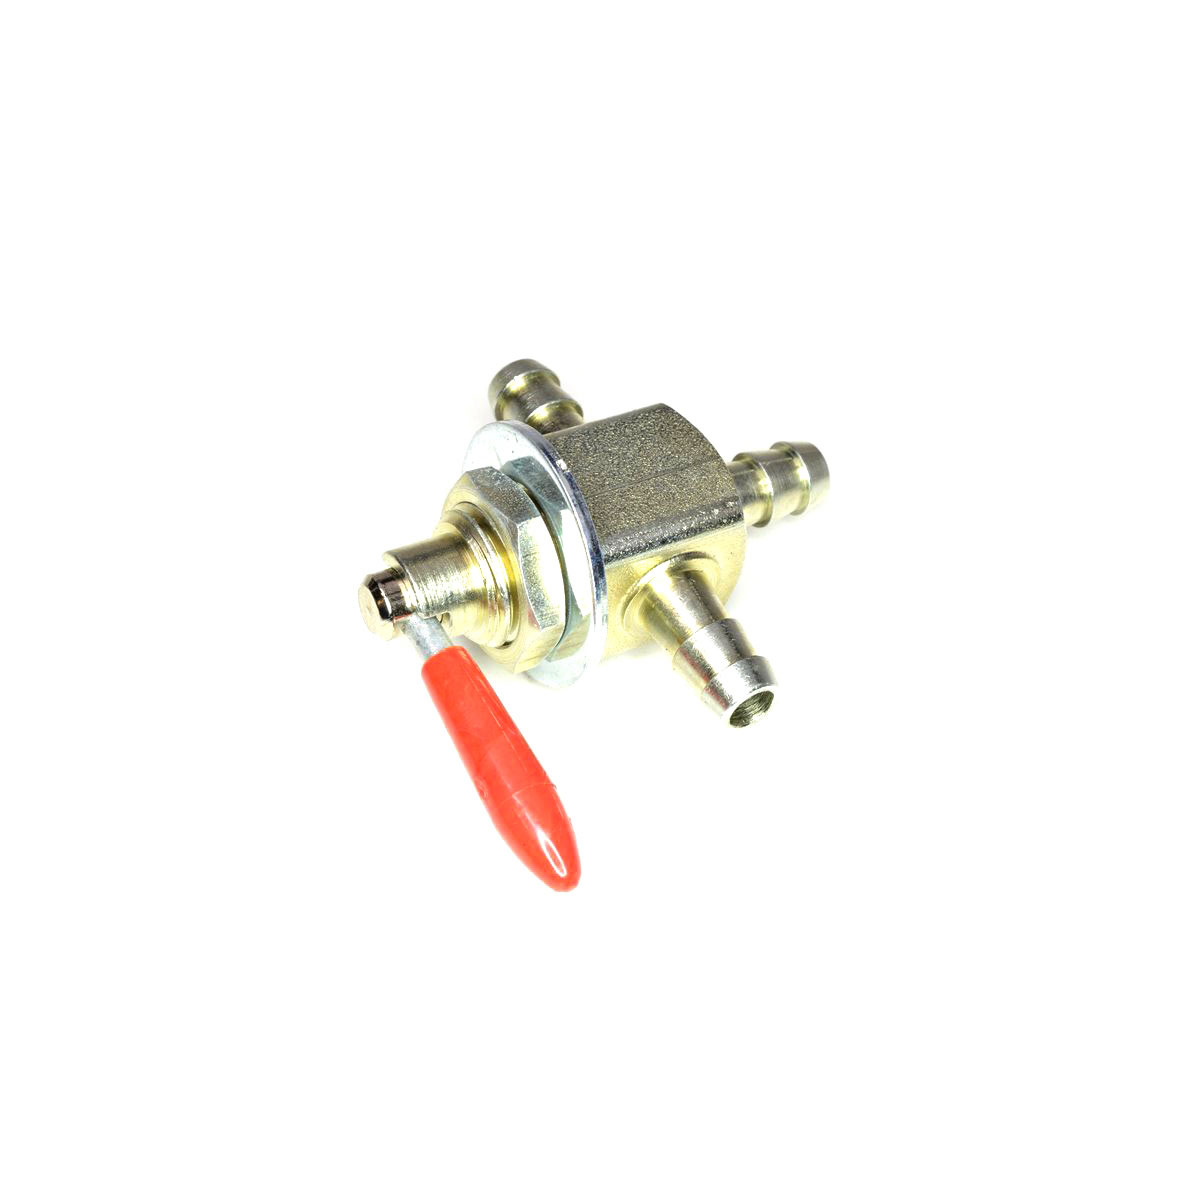 Scag Fuel Shut-Off Valve 482212